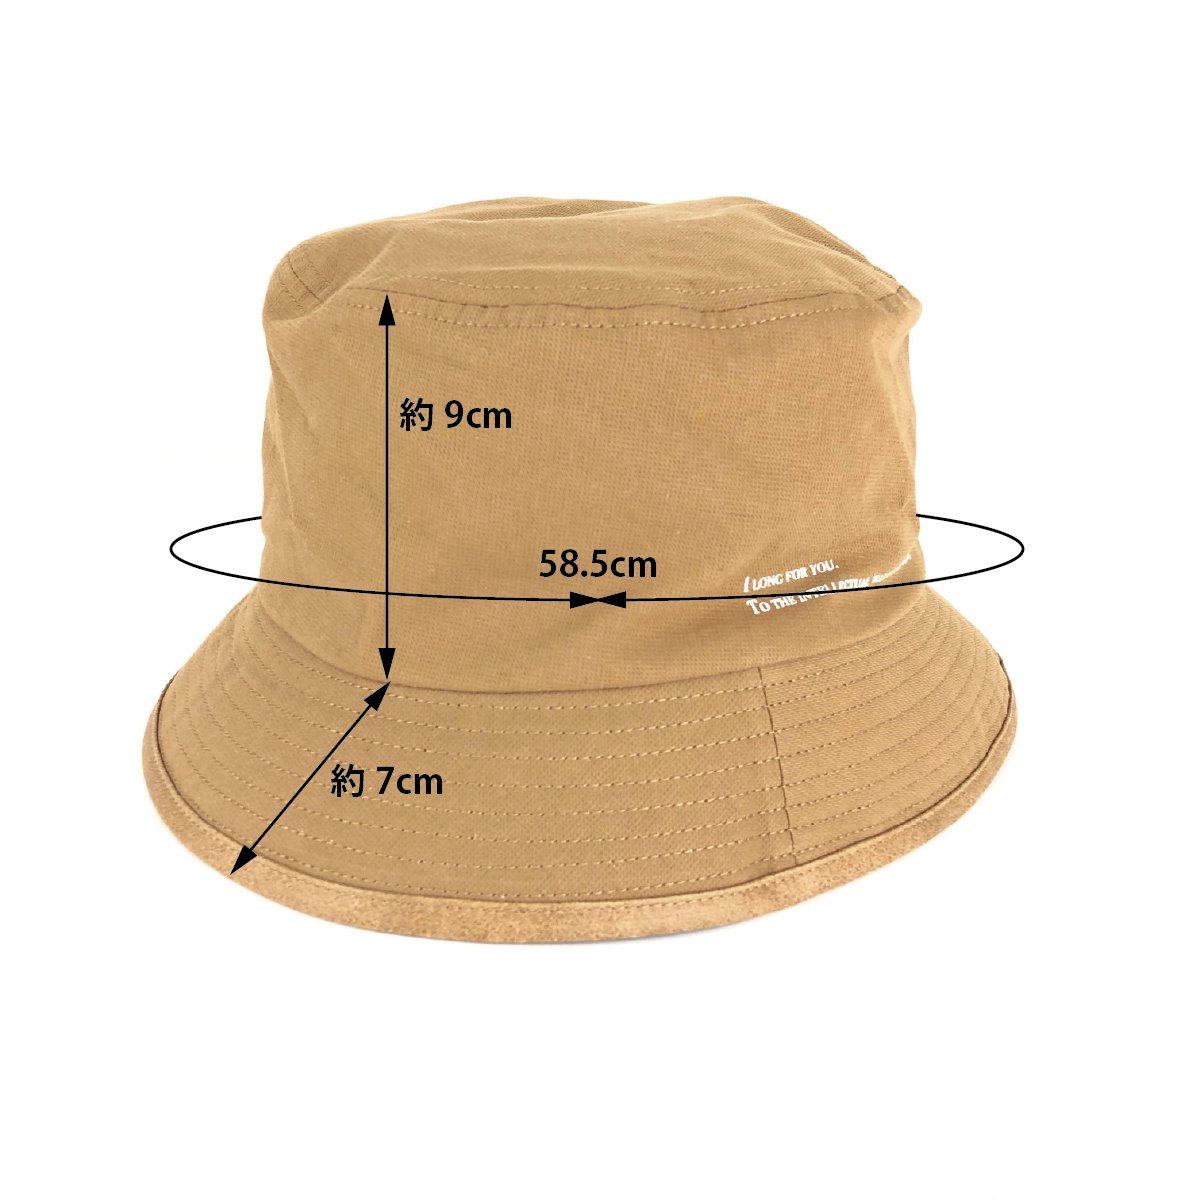 Leather Piping Hat 詳細画像4